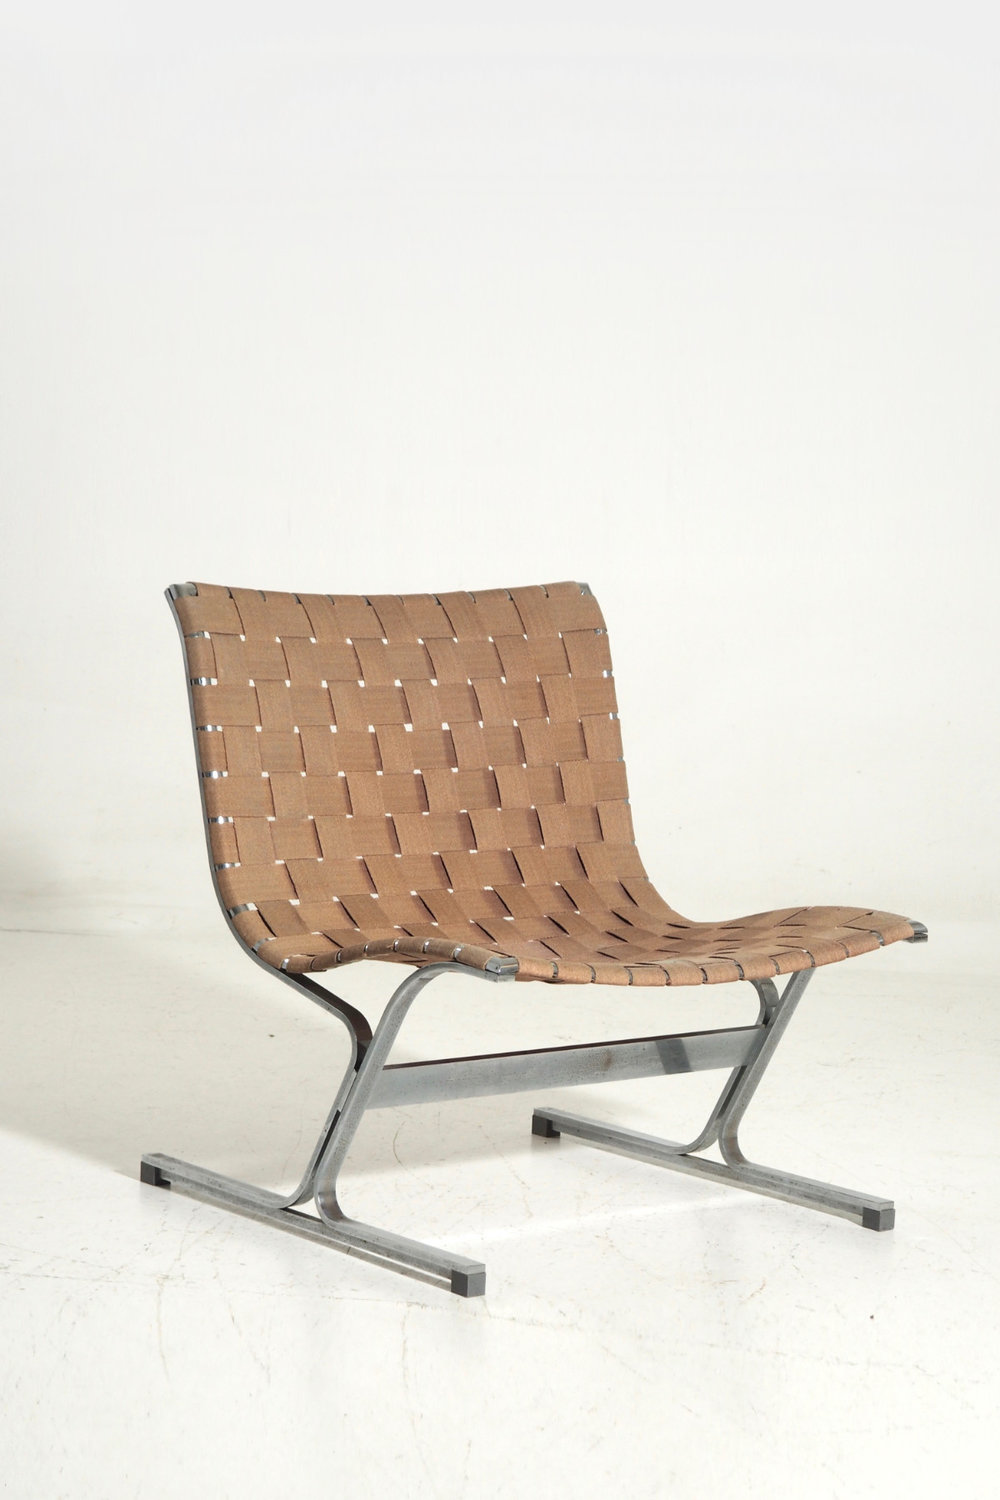 Very rare Italian lounge chair, 60's